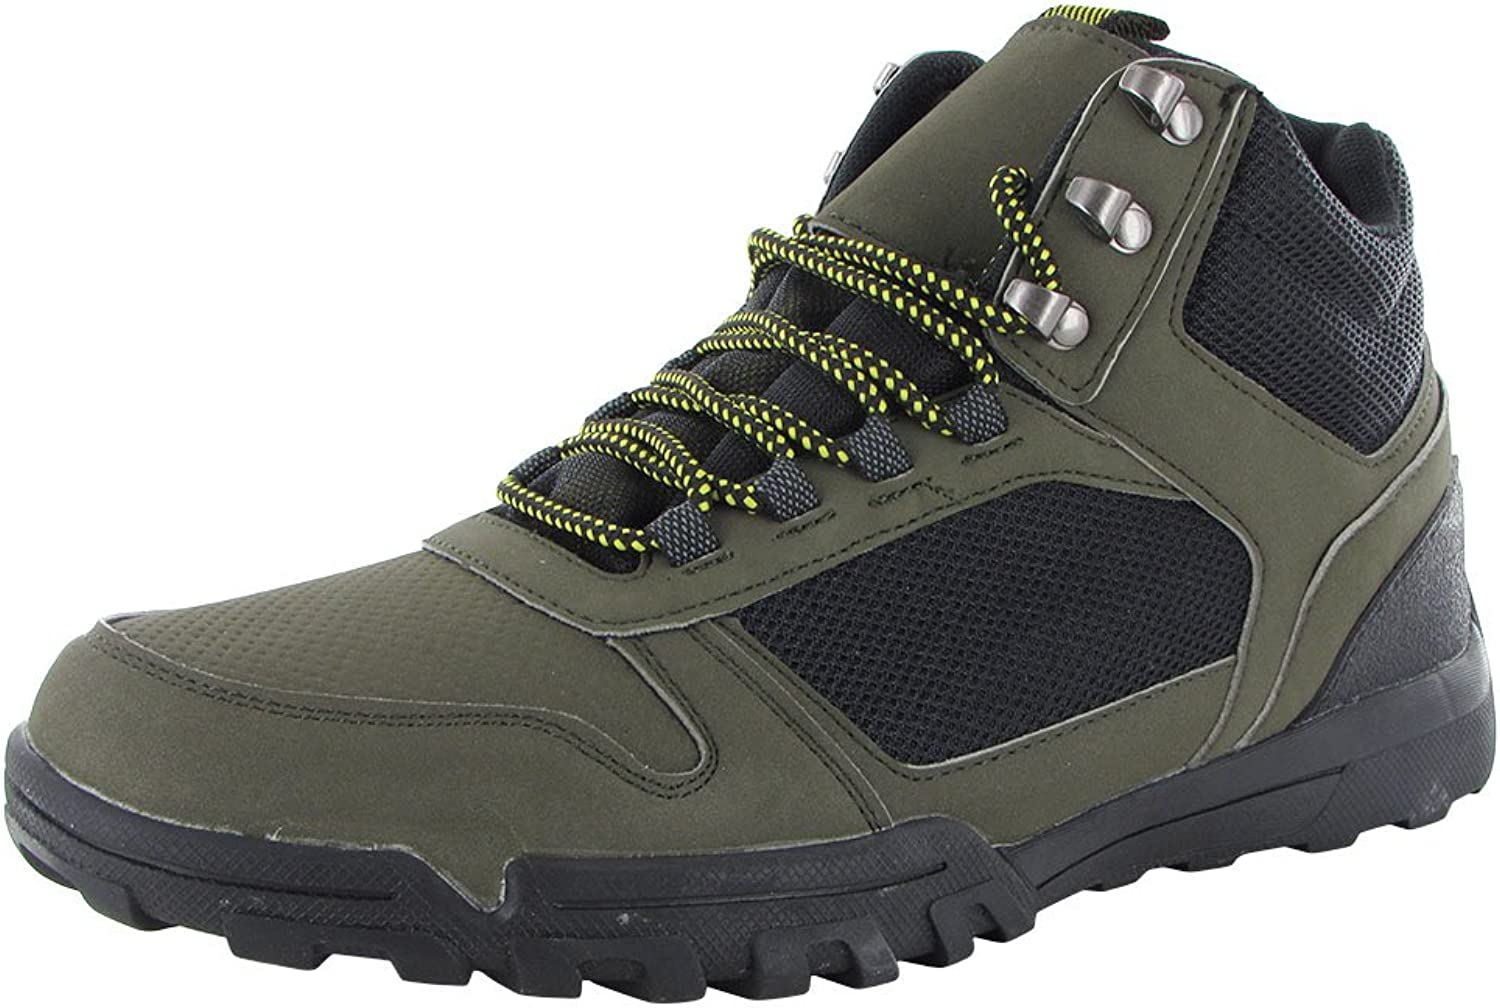 Steve Madden Mens Mounted High Top Hiking shoes